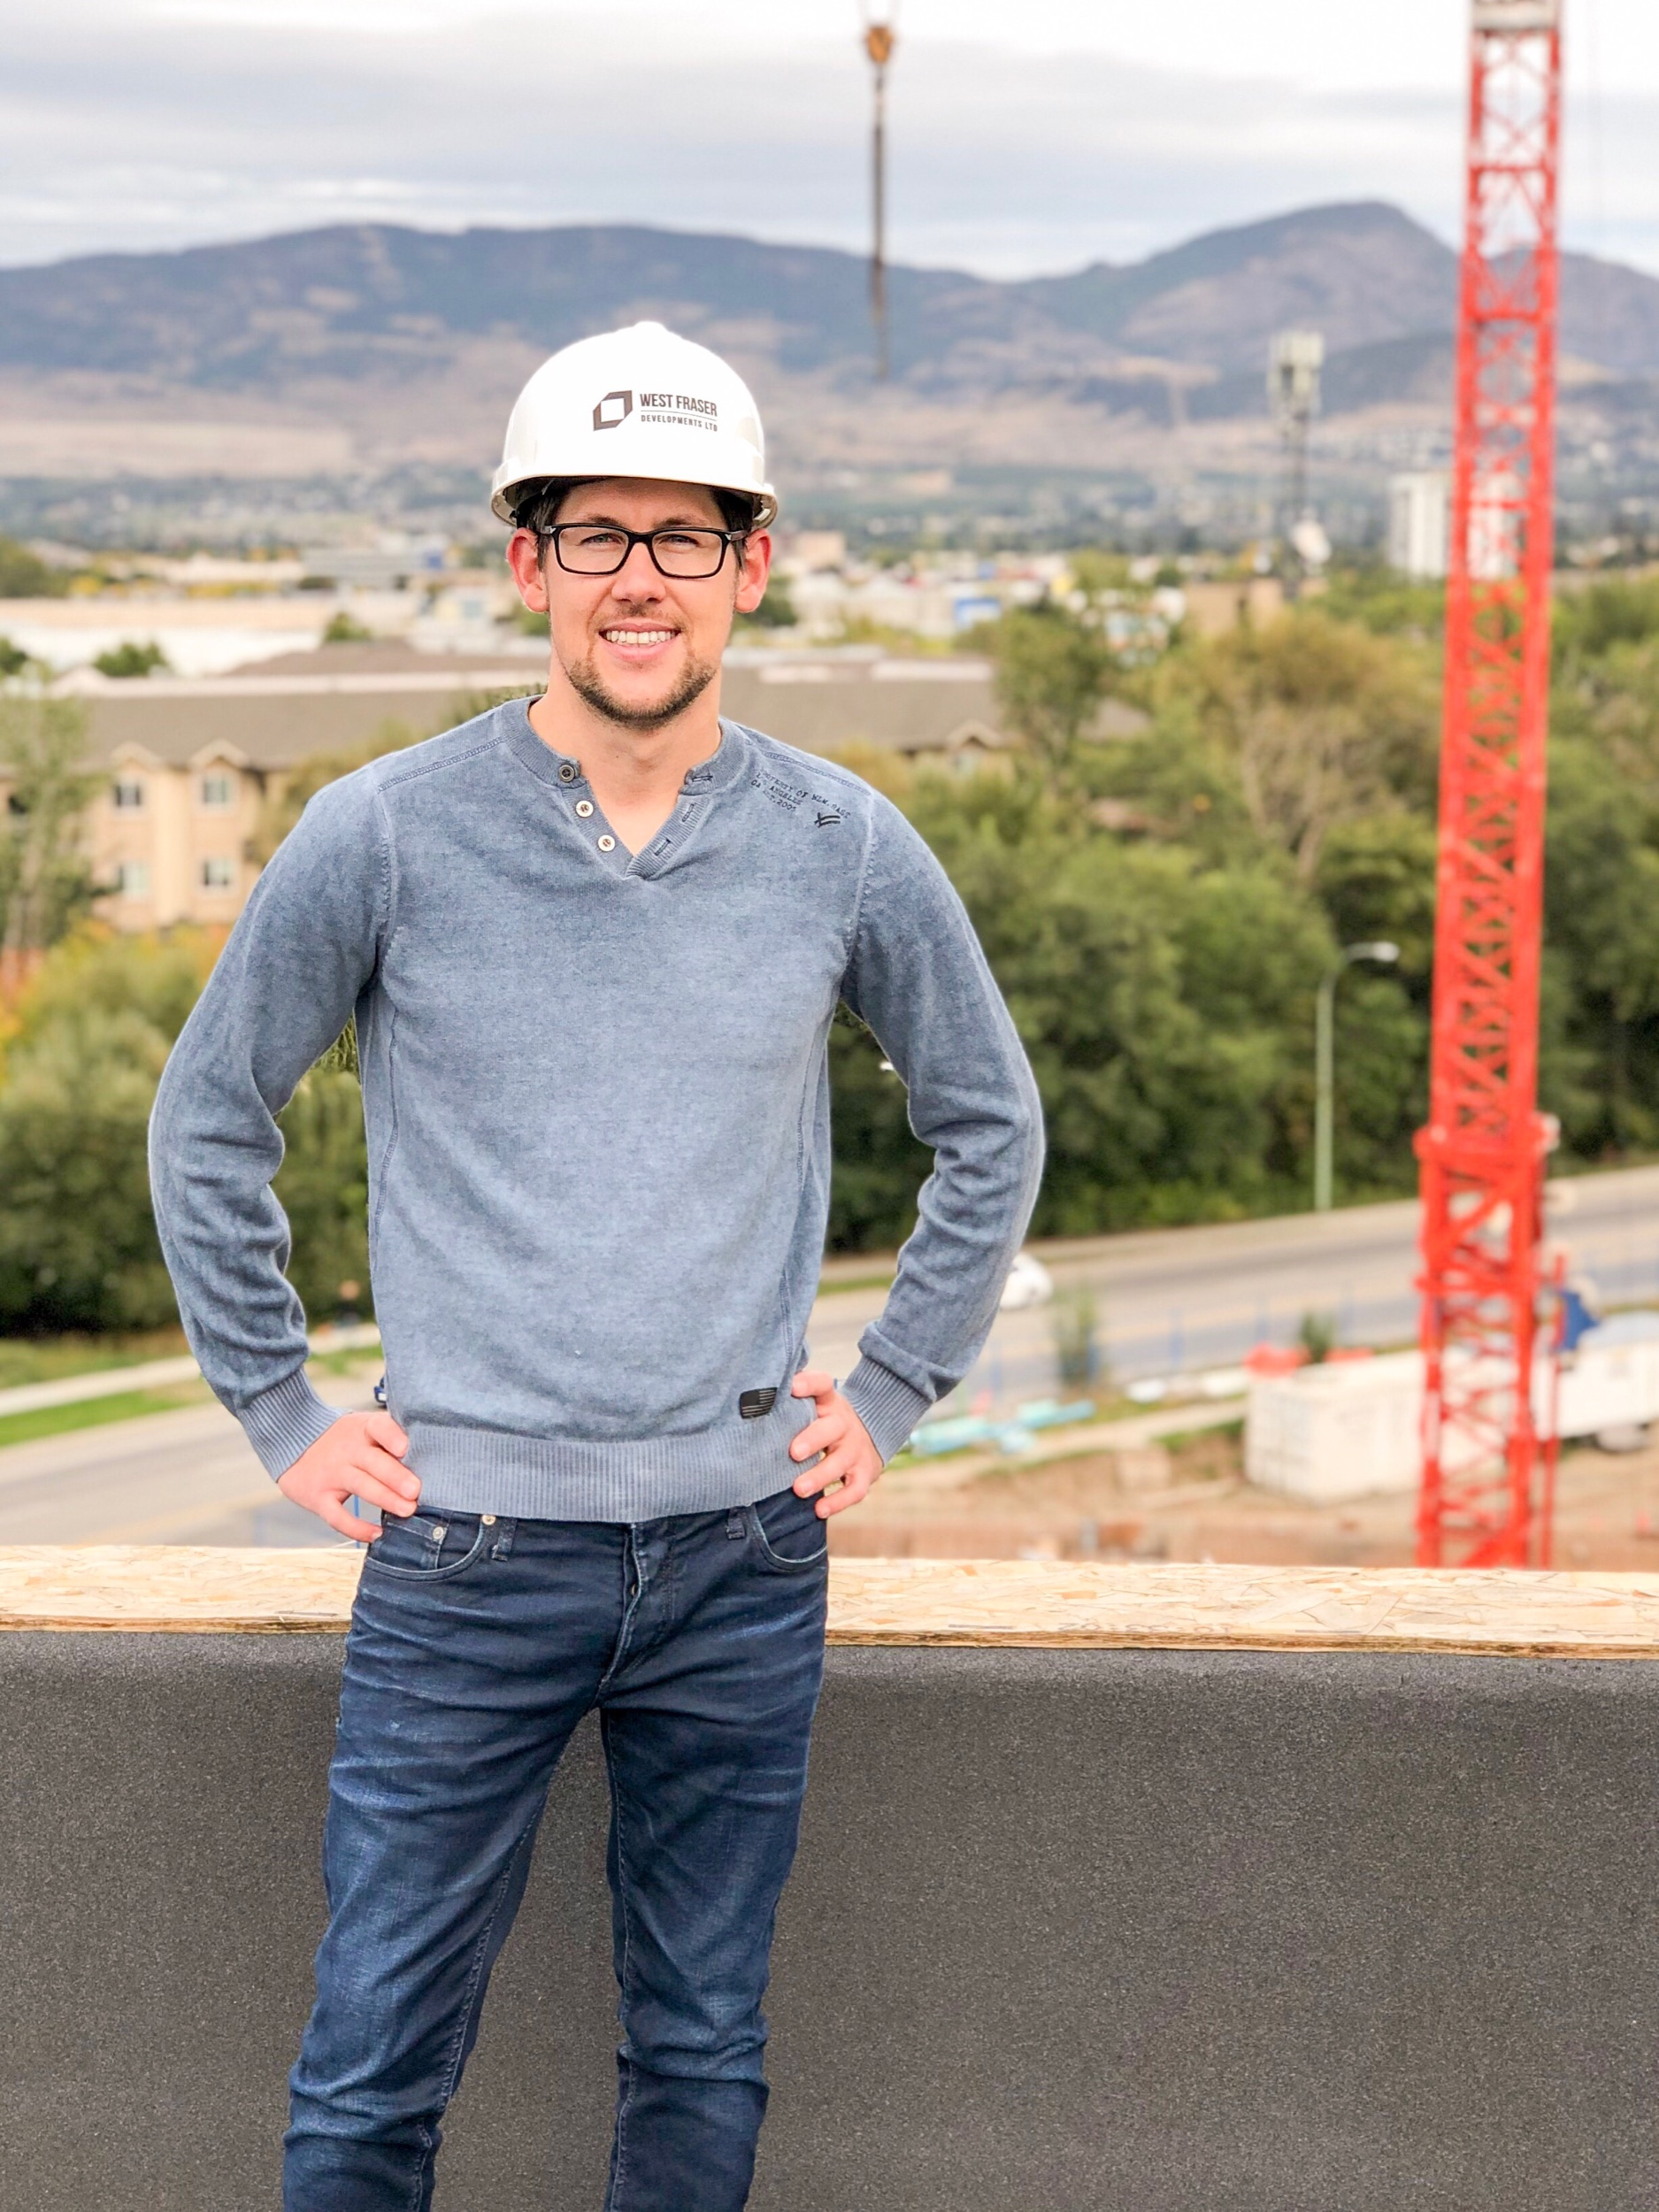 Joshua Elliott, Kelowna REALTOR, a top the nearly complete Hyatt Place Hotel overlooking the development site of the upcoming Beverly condominium project in Kelowna's midtown neighbourhood.